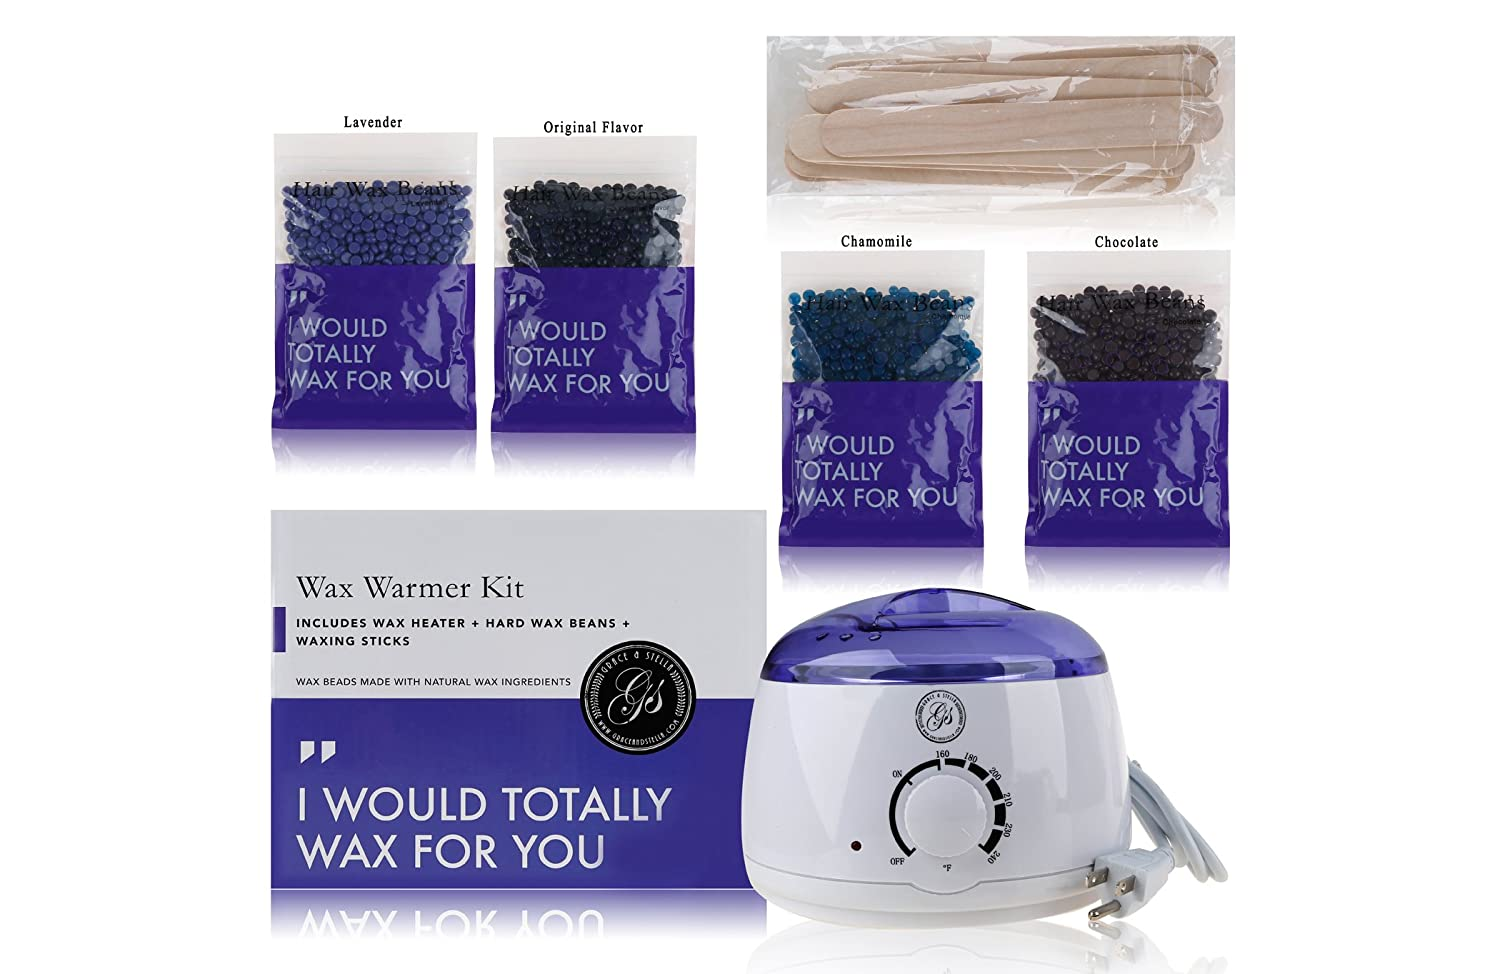 Waxing Hair Removal Hot Pro Wax Warmer Kit with 4 Wax Beads & Applicator Sticks (No Wax Strips Needed) - For Full Body Hair Removing - Professional & At-Home Wax Pot Melter Machine